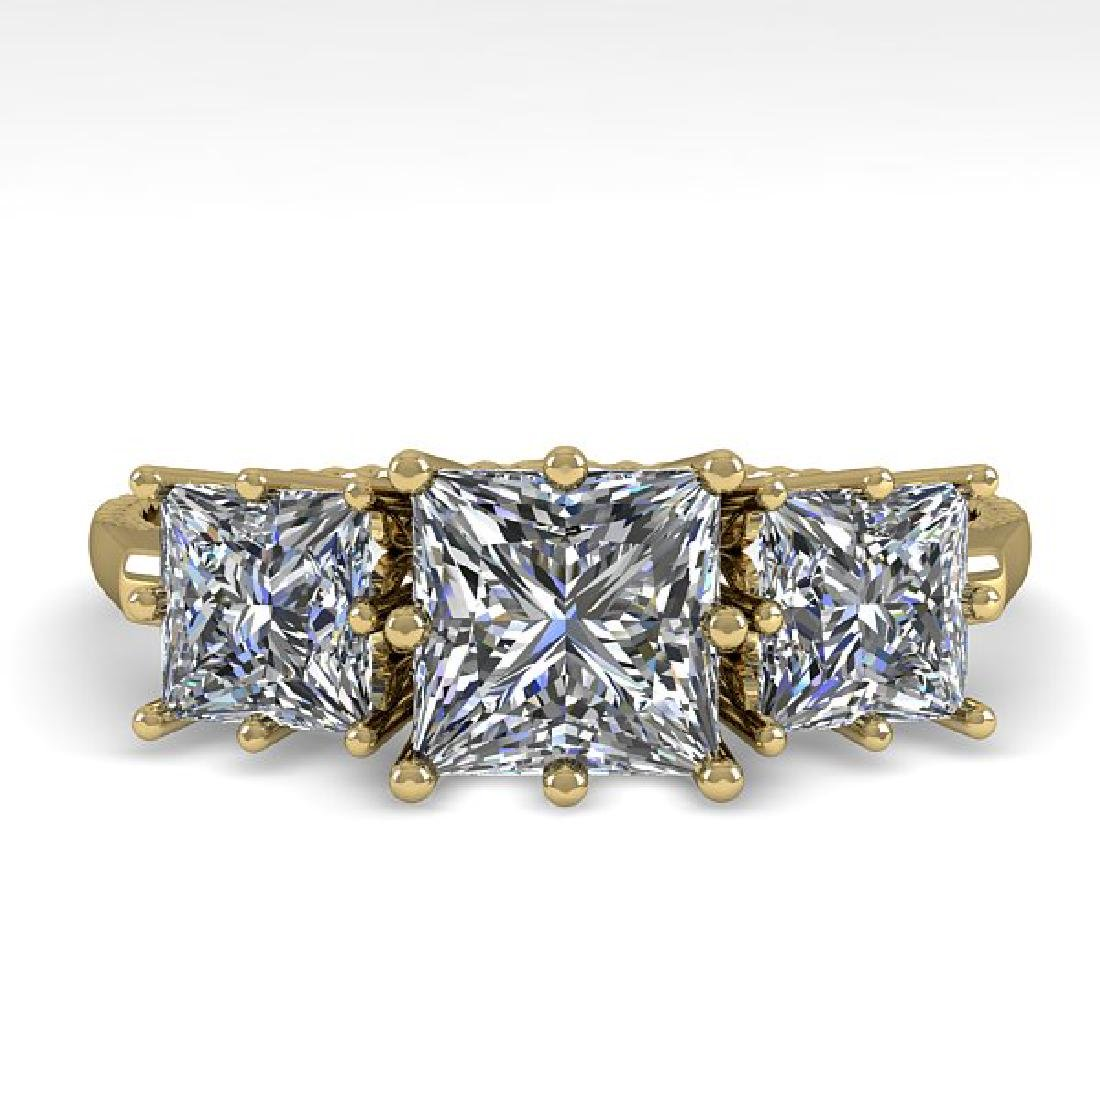 2.0 CTW VS/SI Princess Diamond Art Deco Ring 14K Yellow